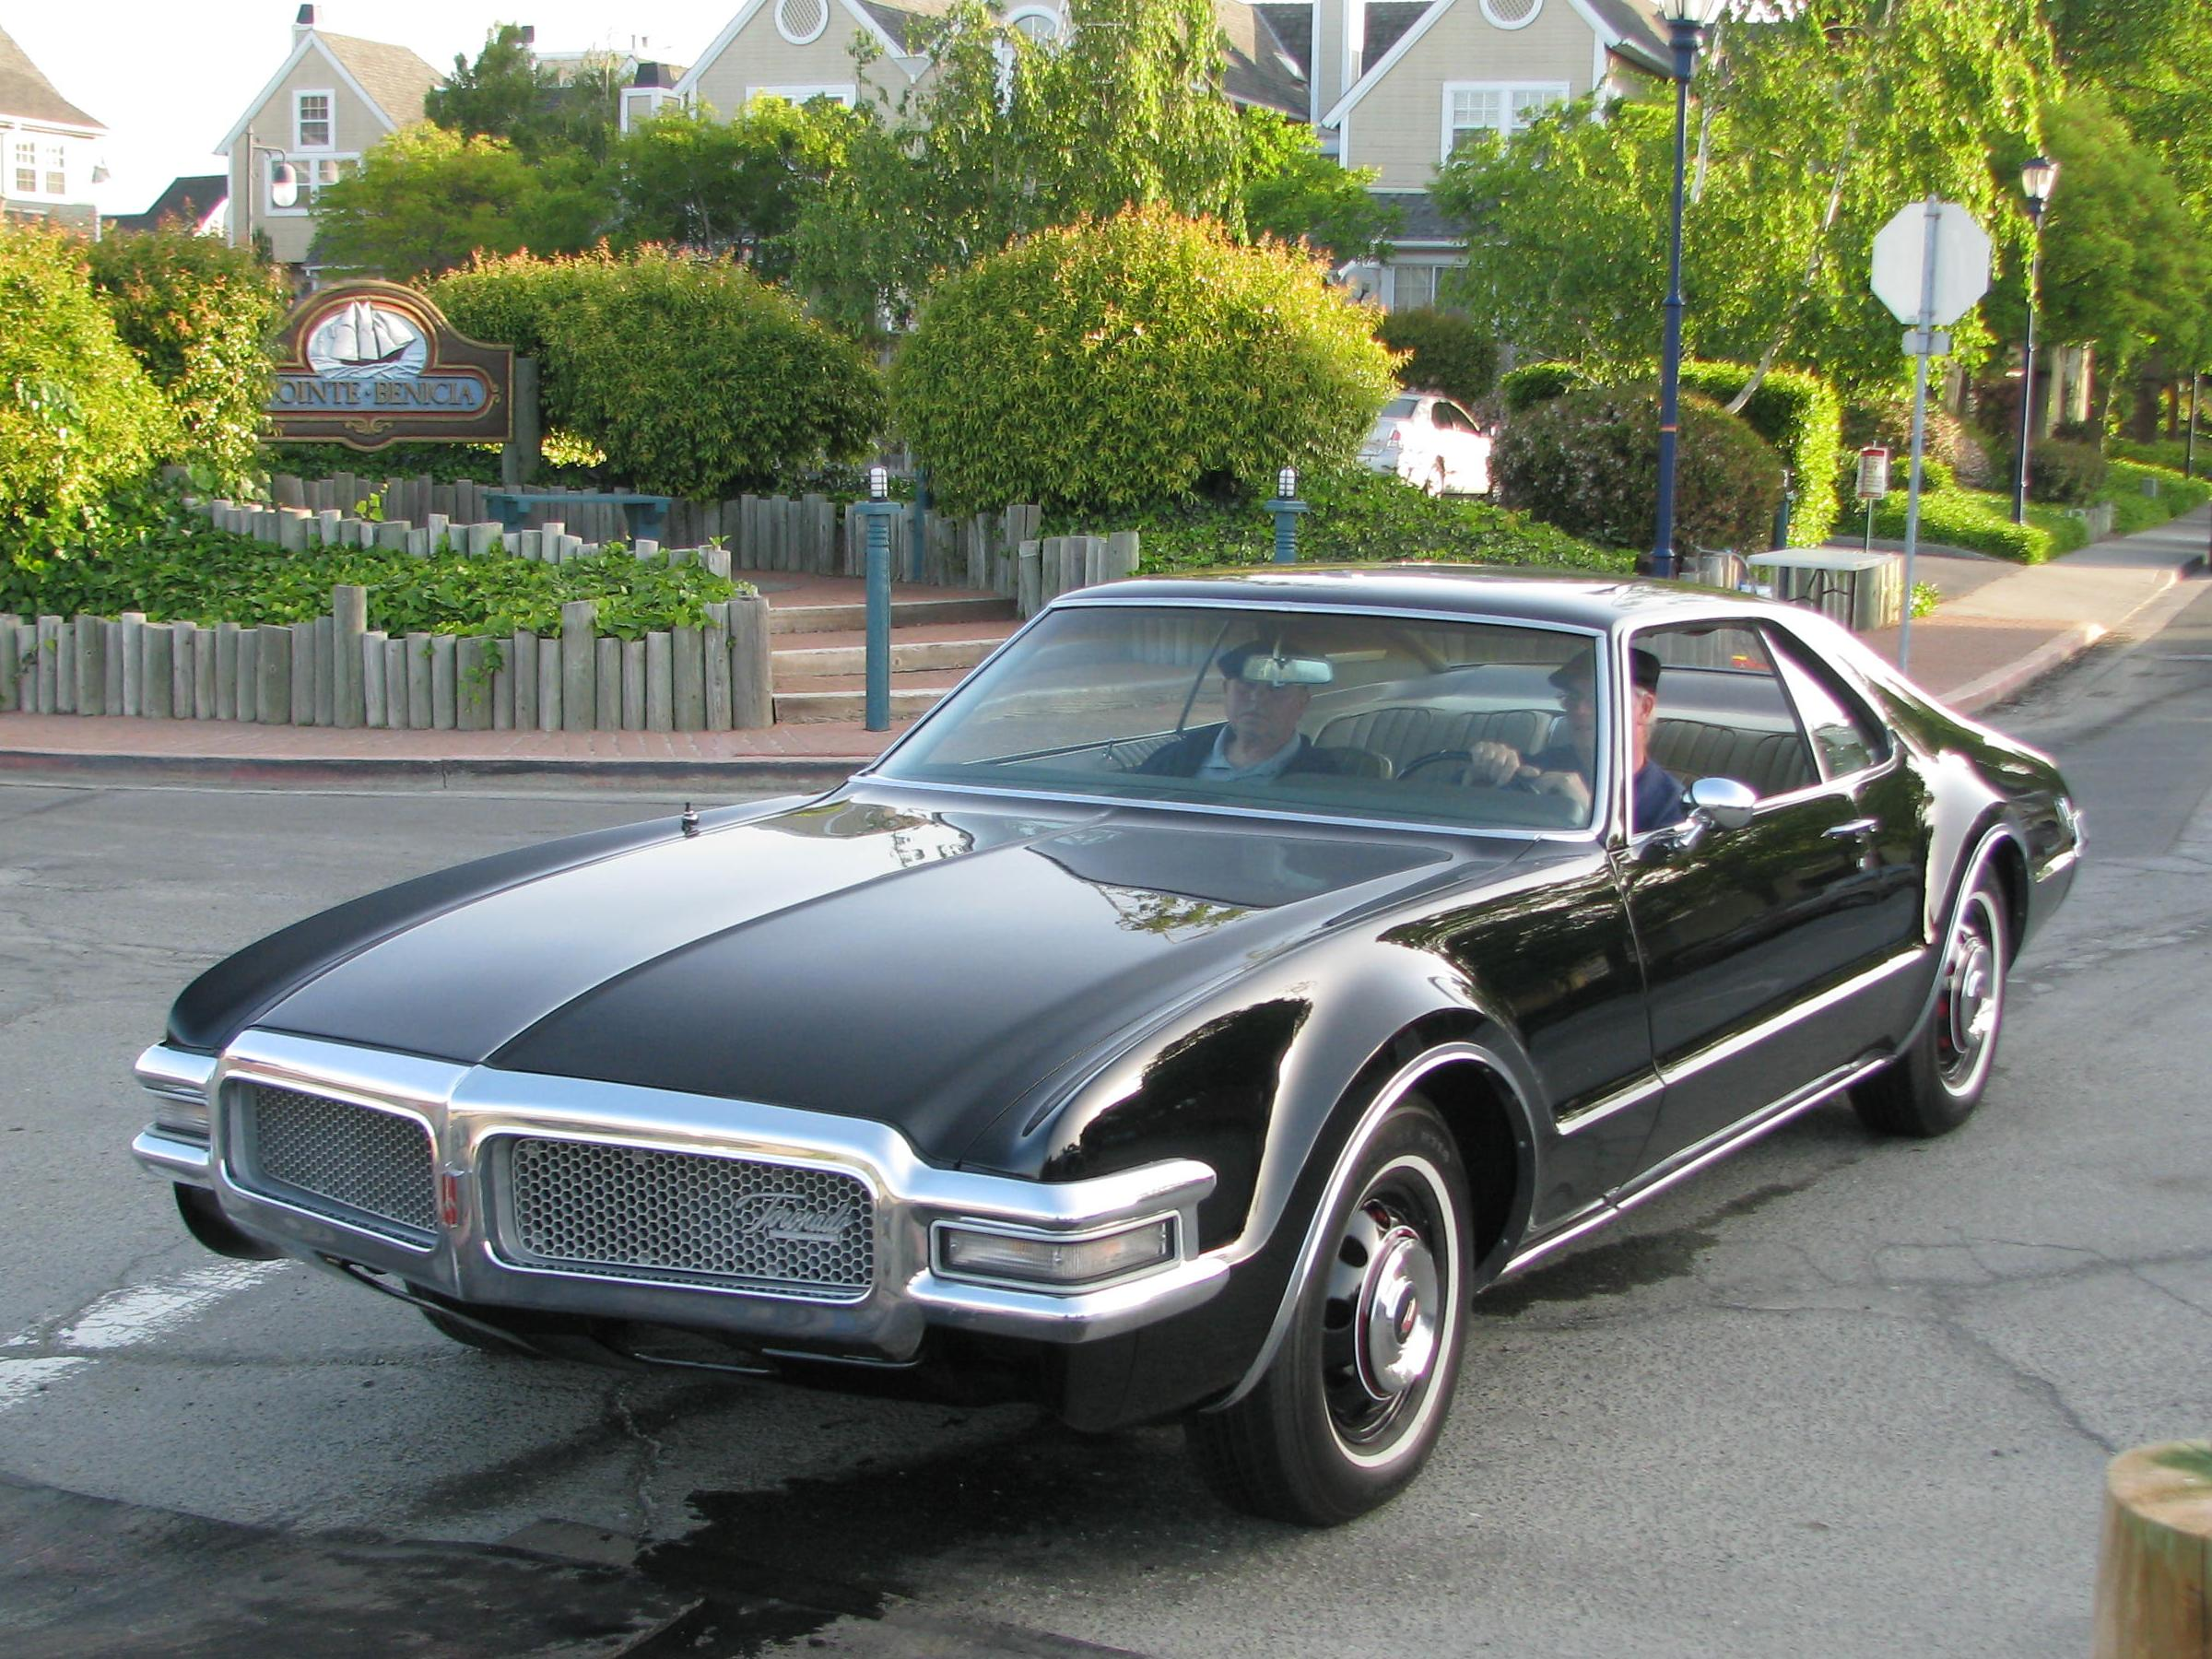 Oldsmobile Cars: Information And Photos